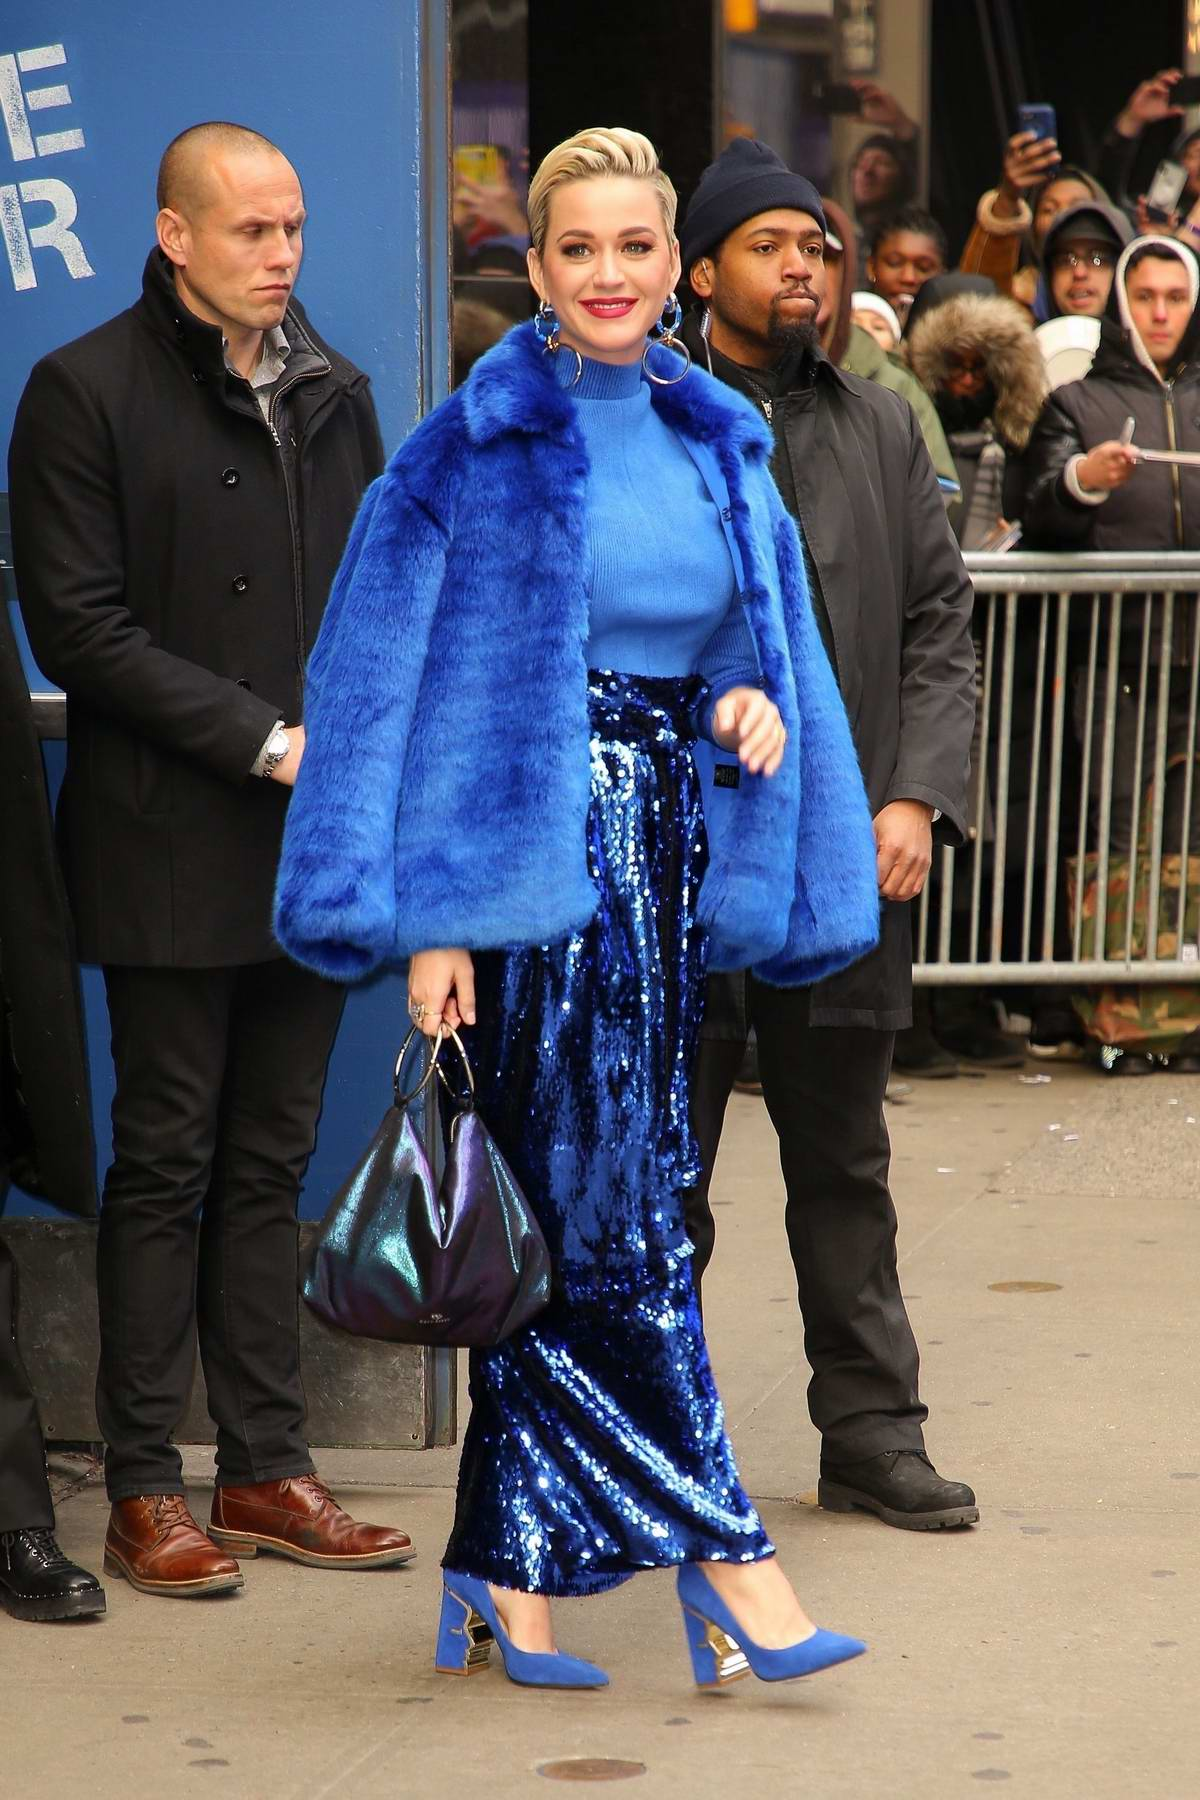 Katy Perry dazzles in a bright blue ensemble as she arrives at Good Morning America in New York City